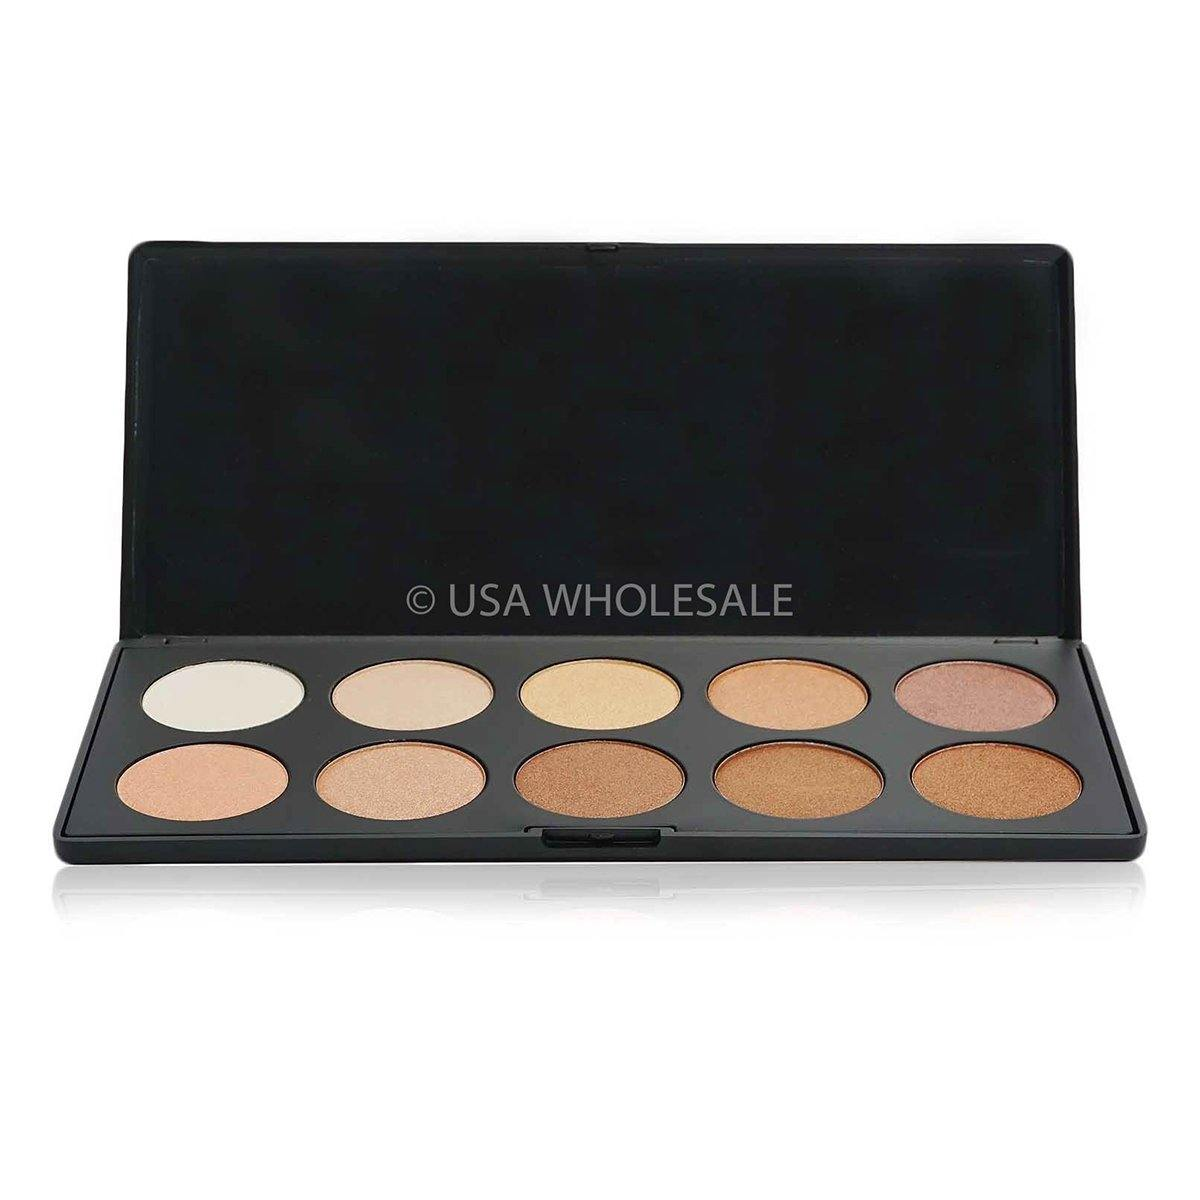 BEAUTY CREATIONS | Glowing Land Eyeshadow Palette (10 Shades X Case of 12)